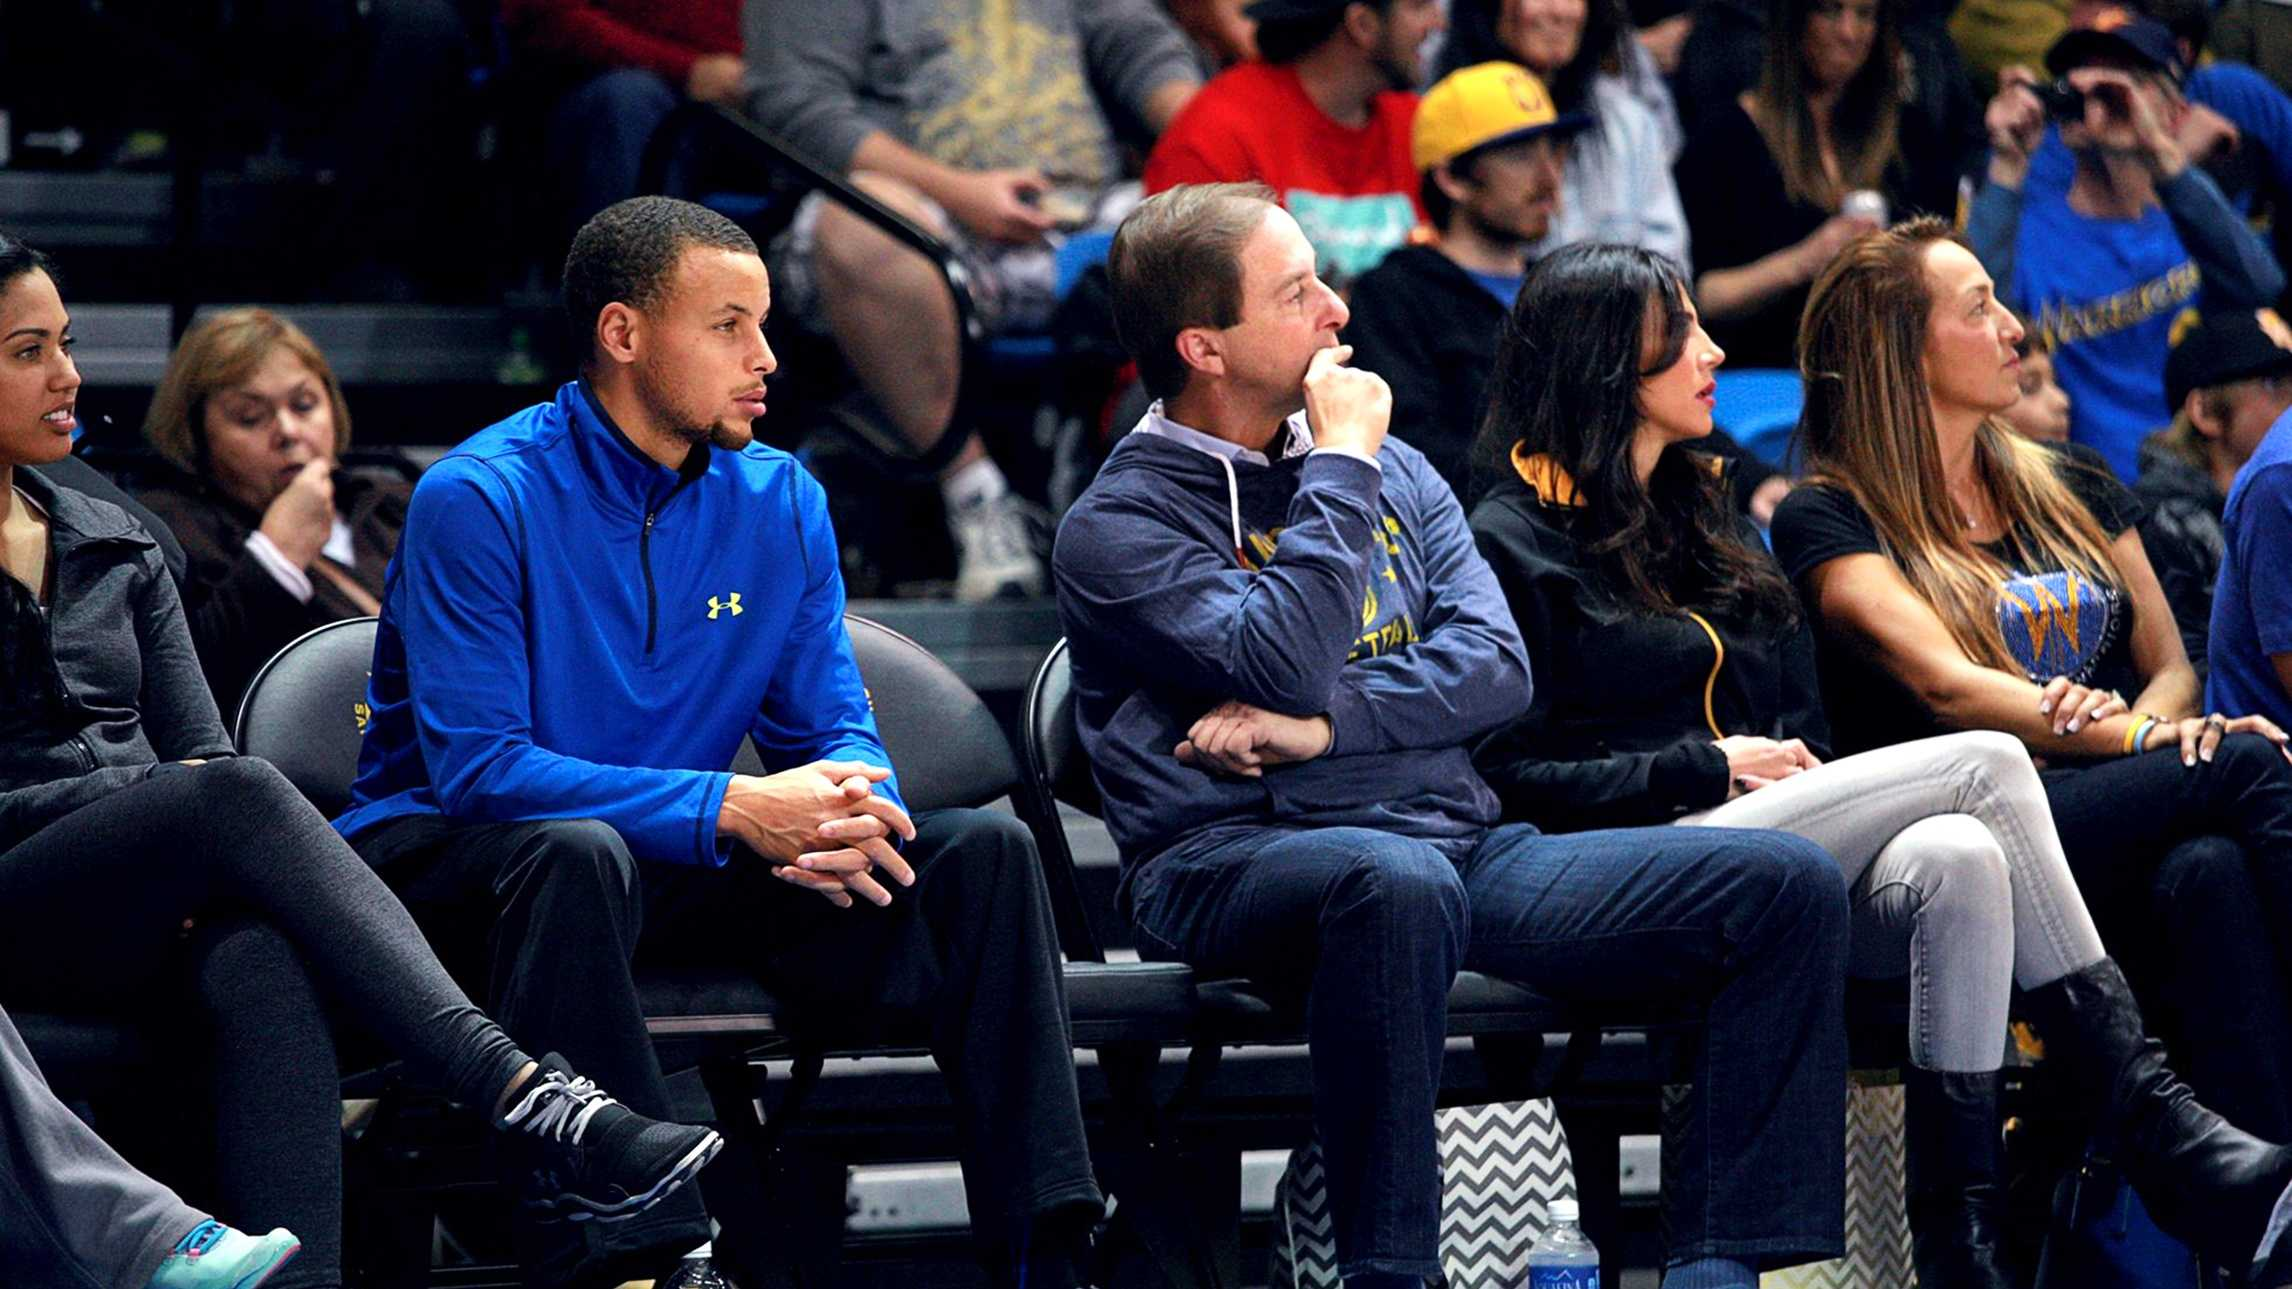 Stephen Curry cheered on his brother at the Santa Cruz Warriors' game. (Nov. 25, 2013) / Tim Cattera/ Santa Cruz Warriors